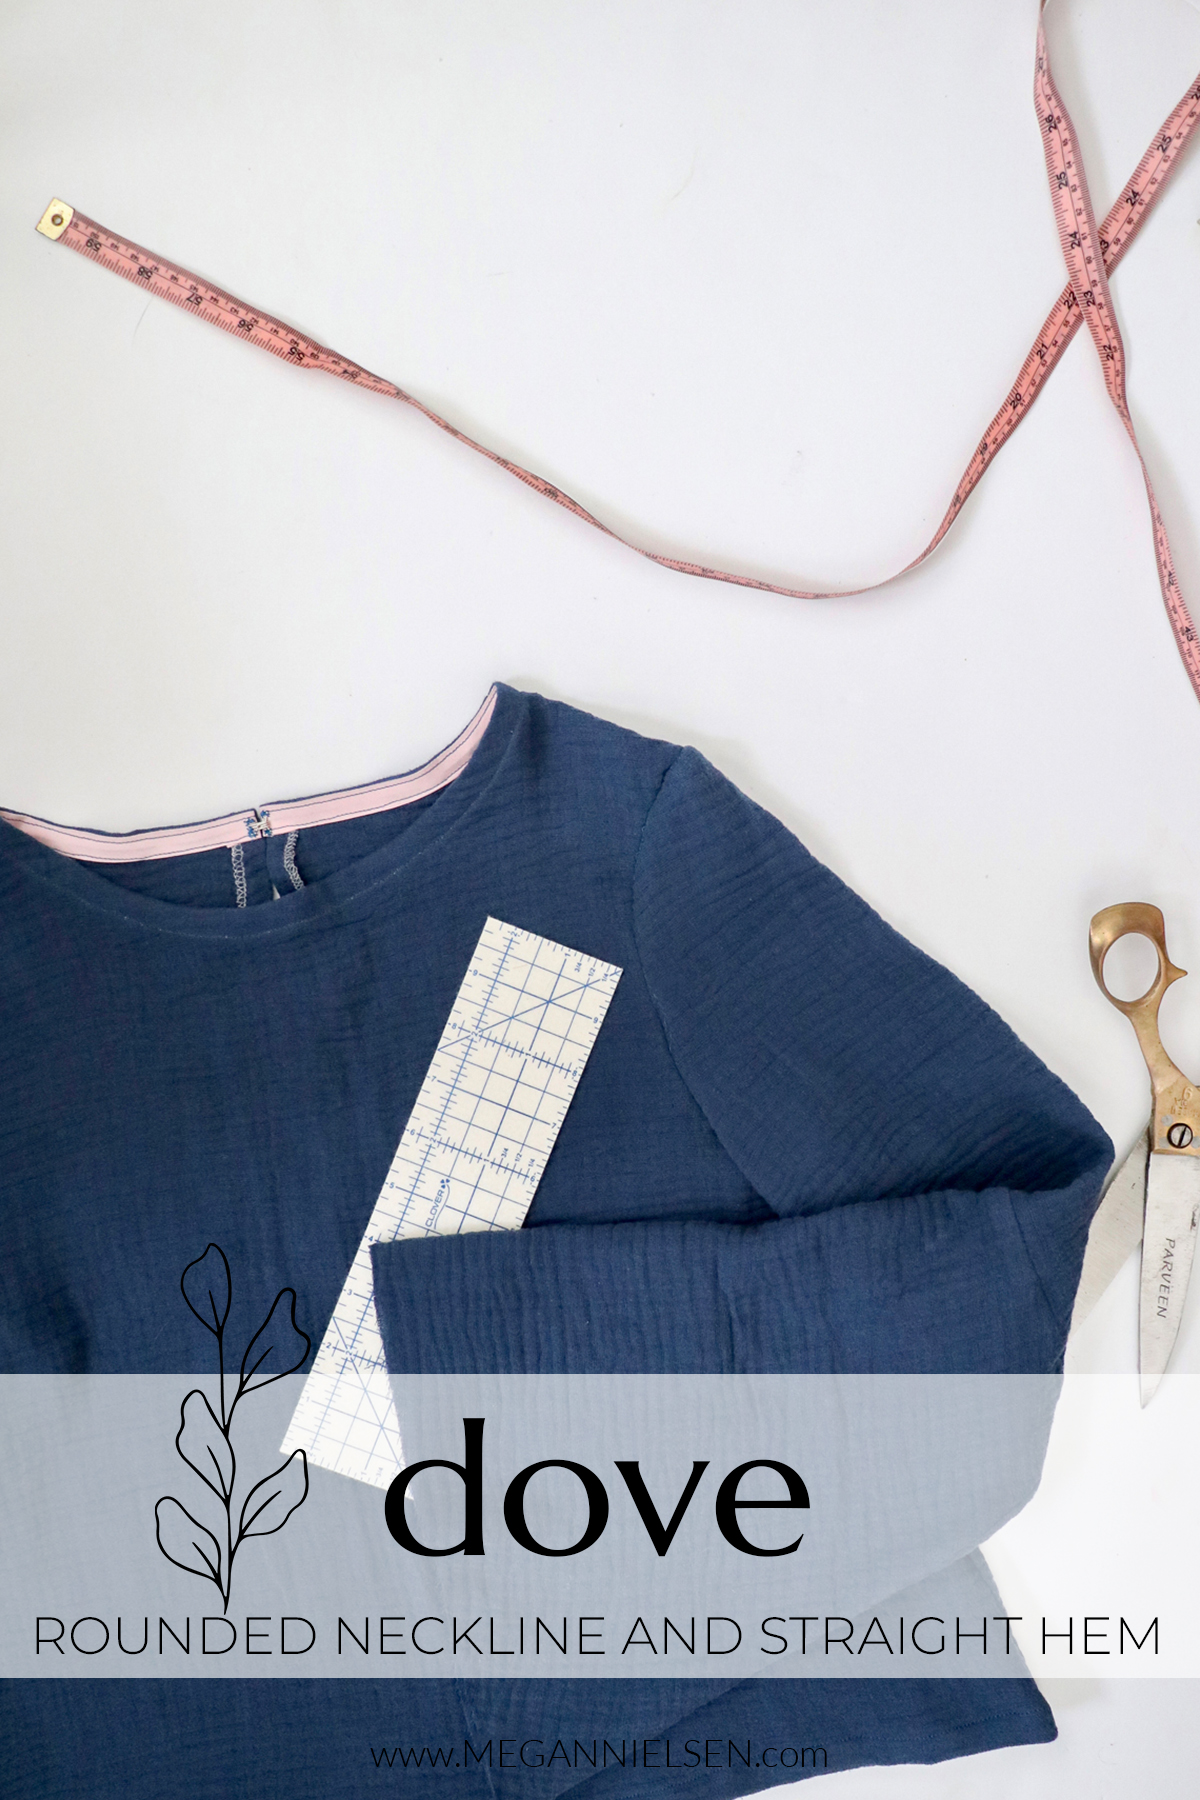 Dove sewalong rounded neckline and straight hem variation